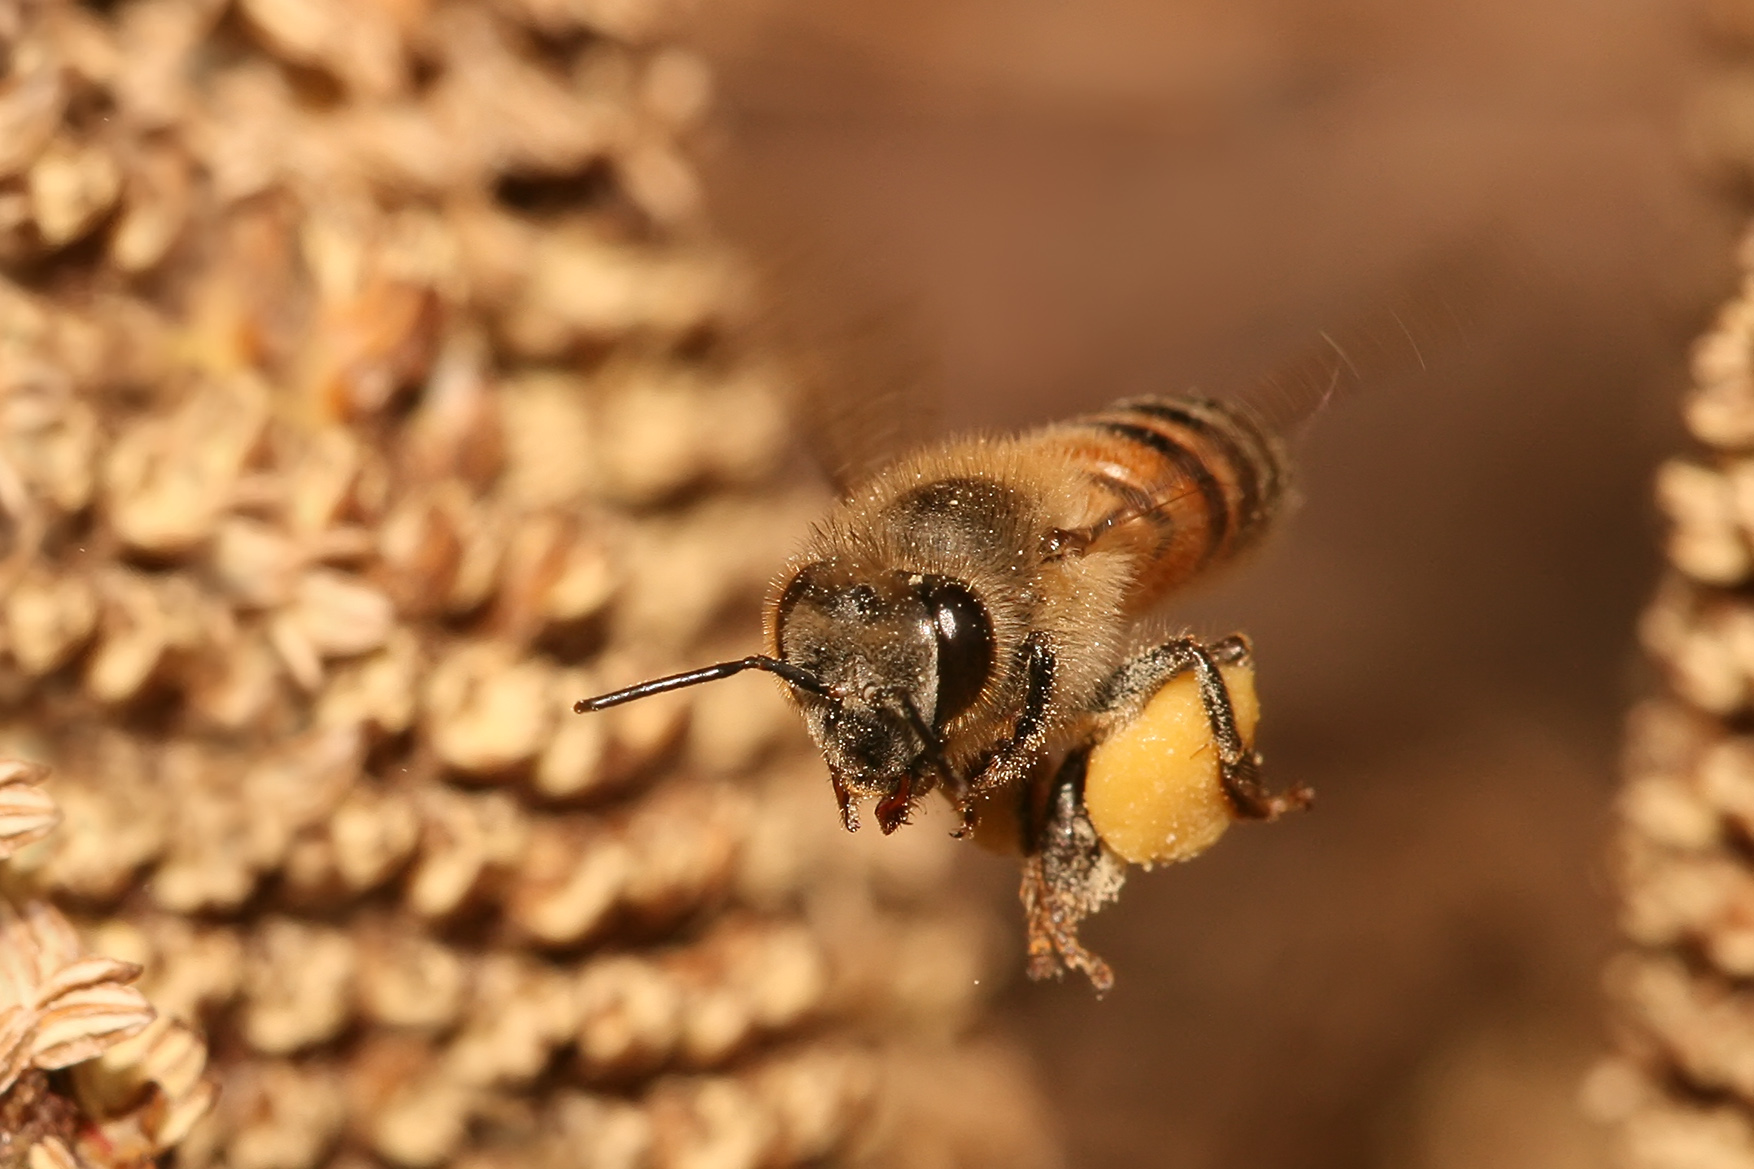 https://upload.wikimedia.org/wikipedia/commons/9/99/Apis_mellifera_flying.jpg